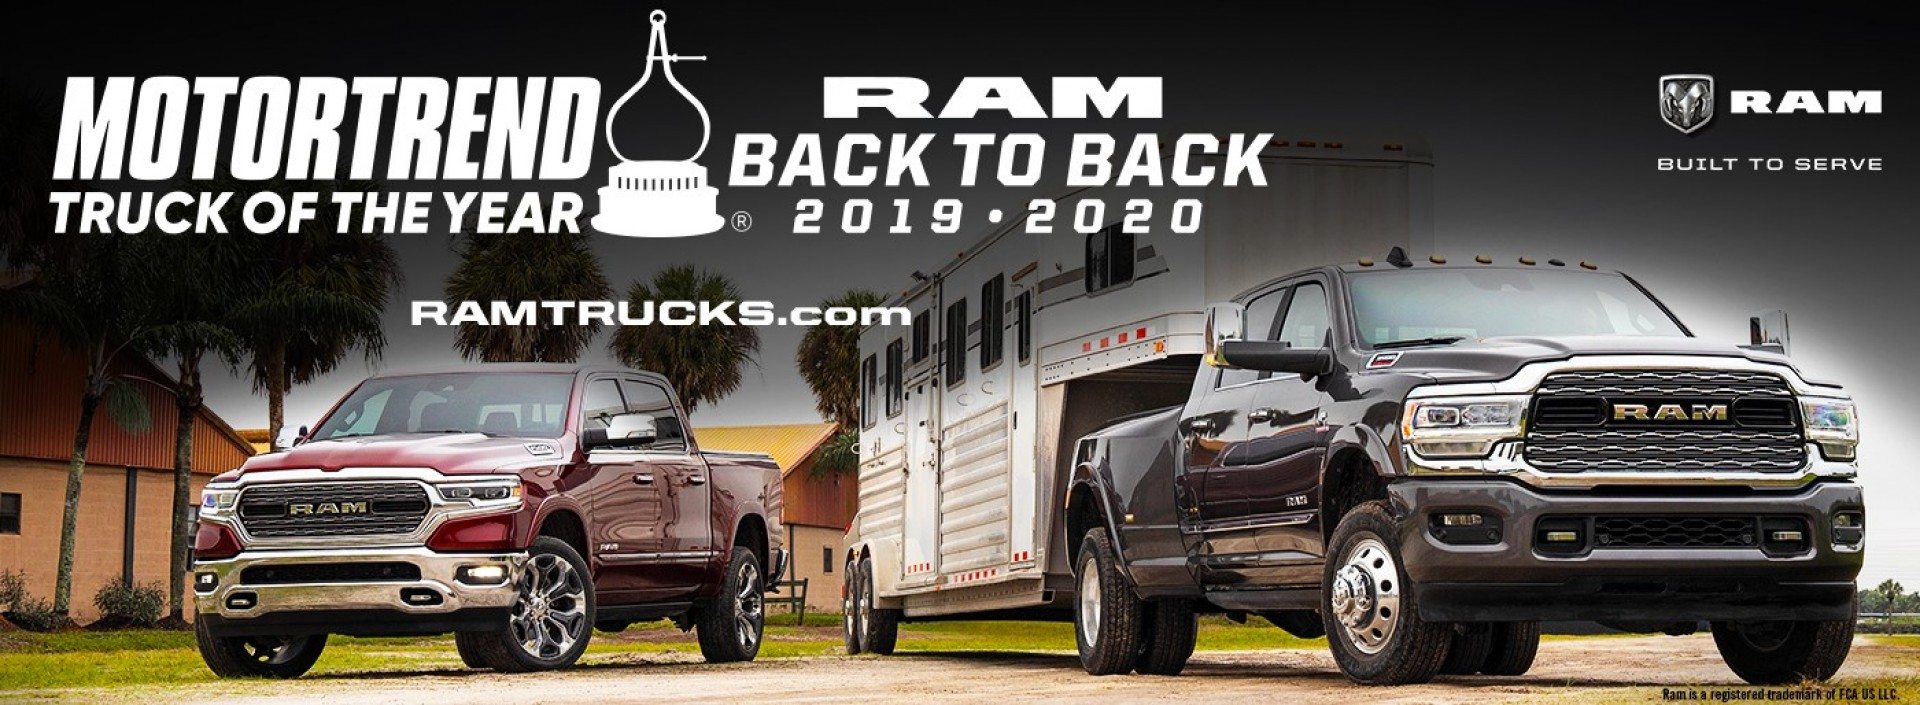 RAM - Motortrend Truck of the Year 2019-2020